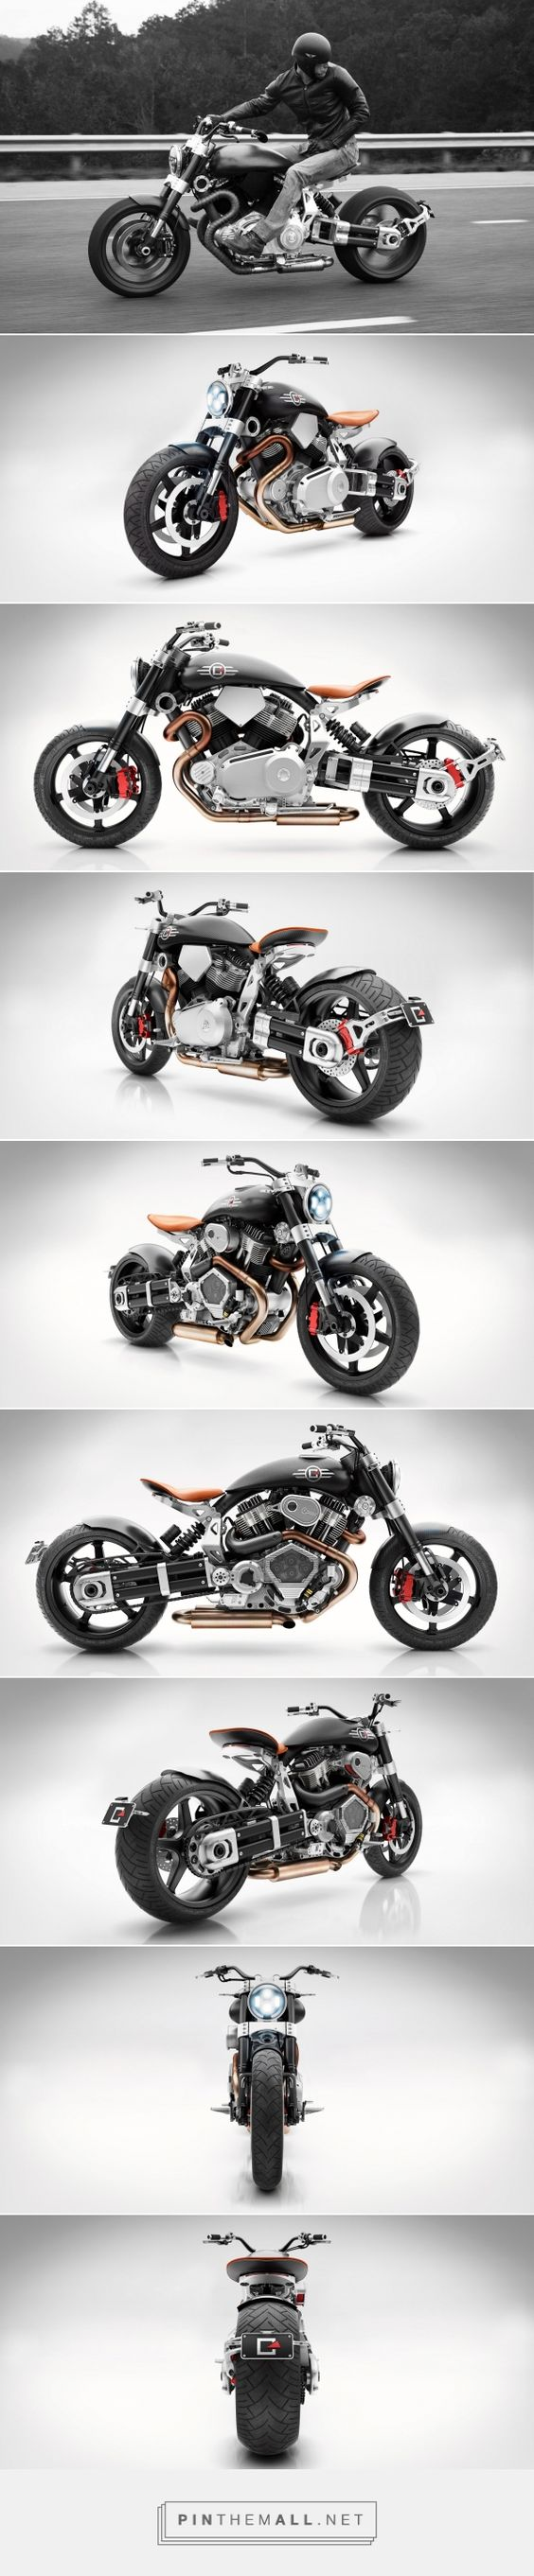 Hellcat | Confederate Motorcycles